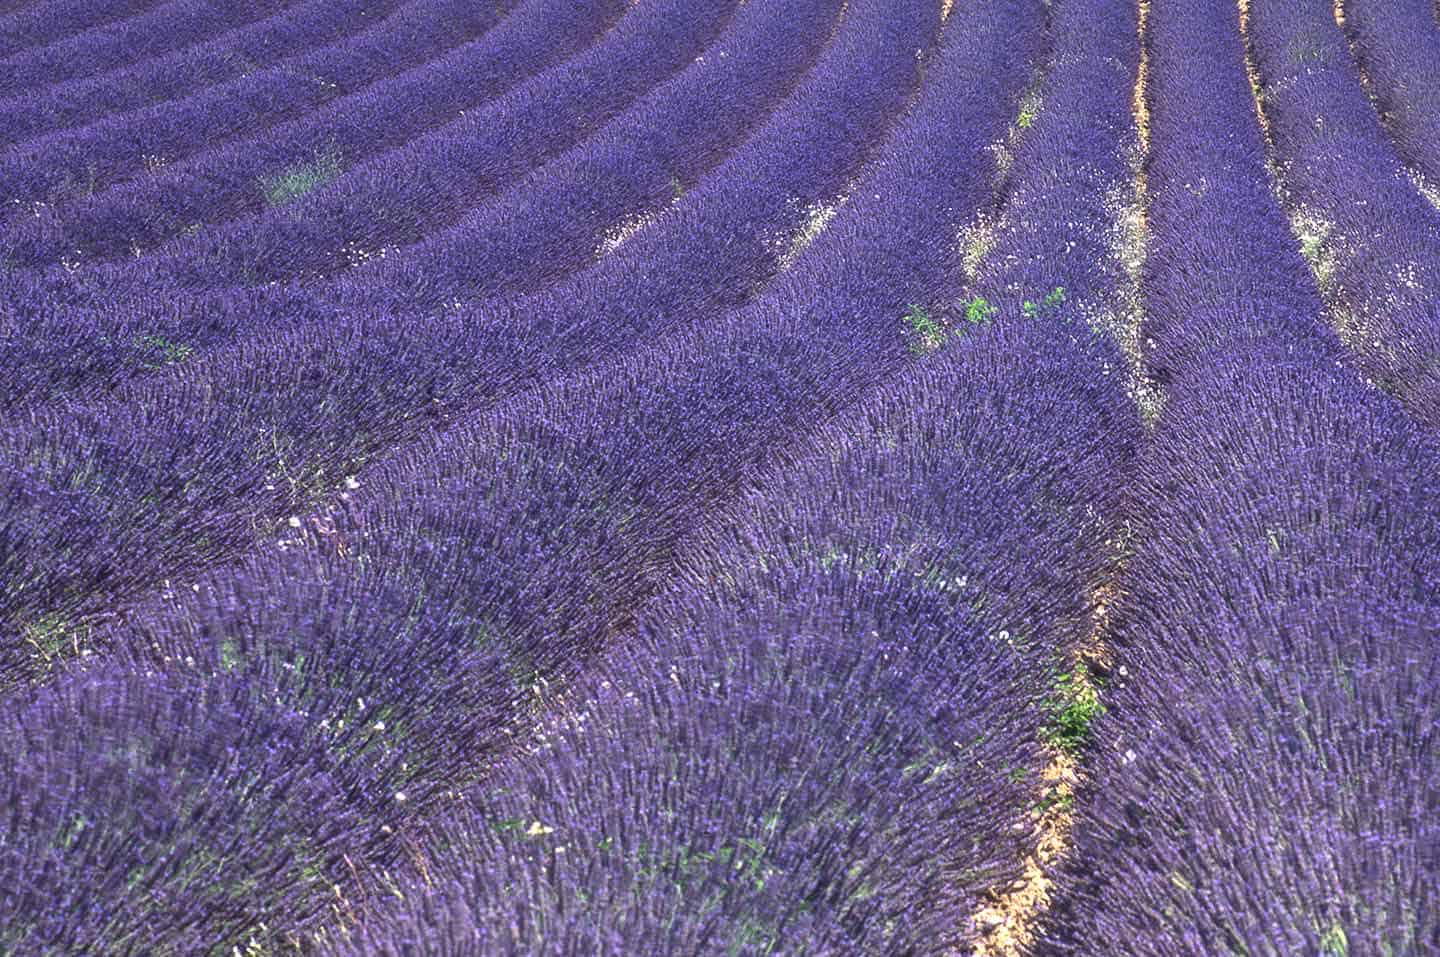 Image of a lavender field near Sault, Provence